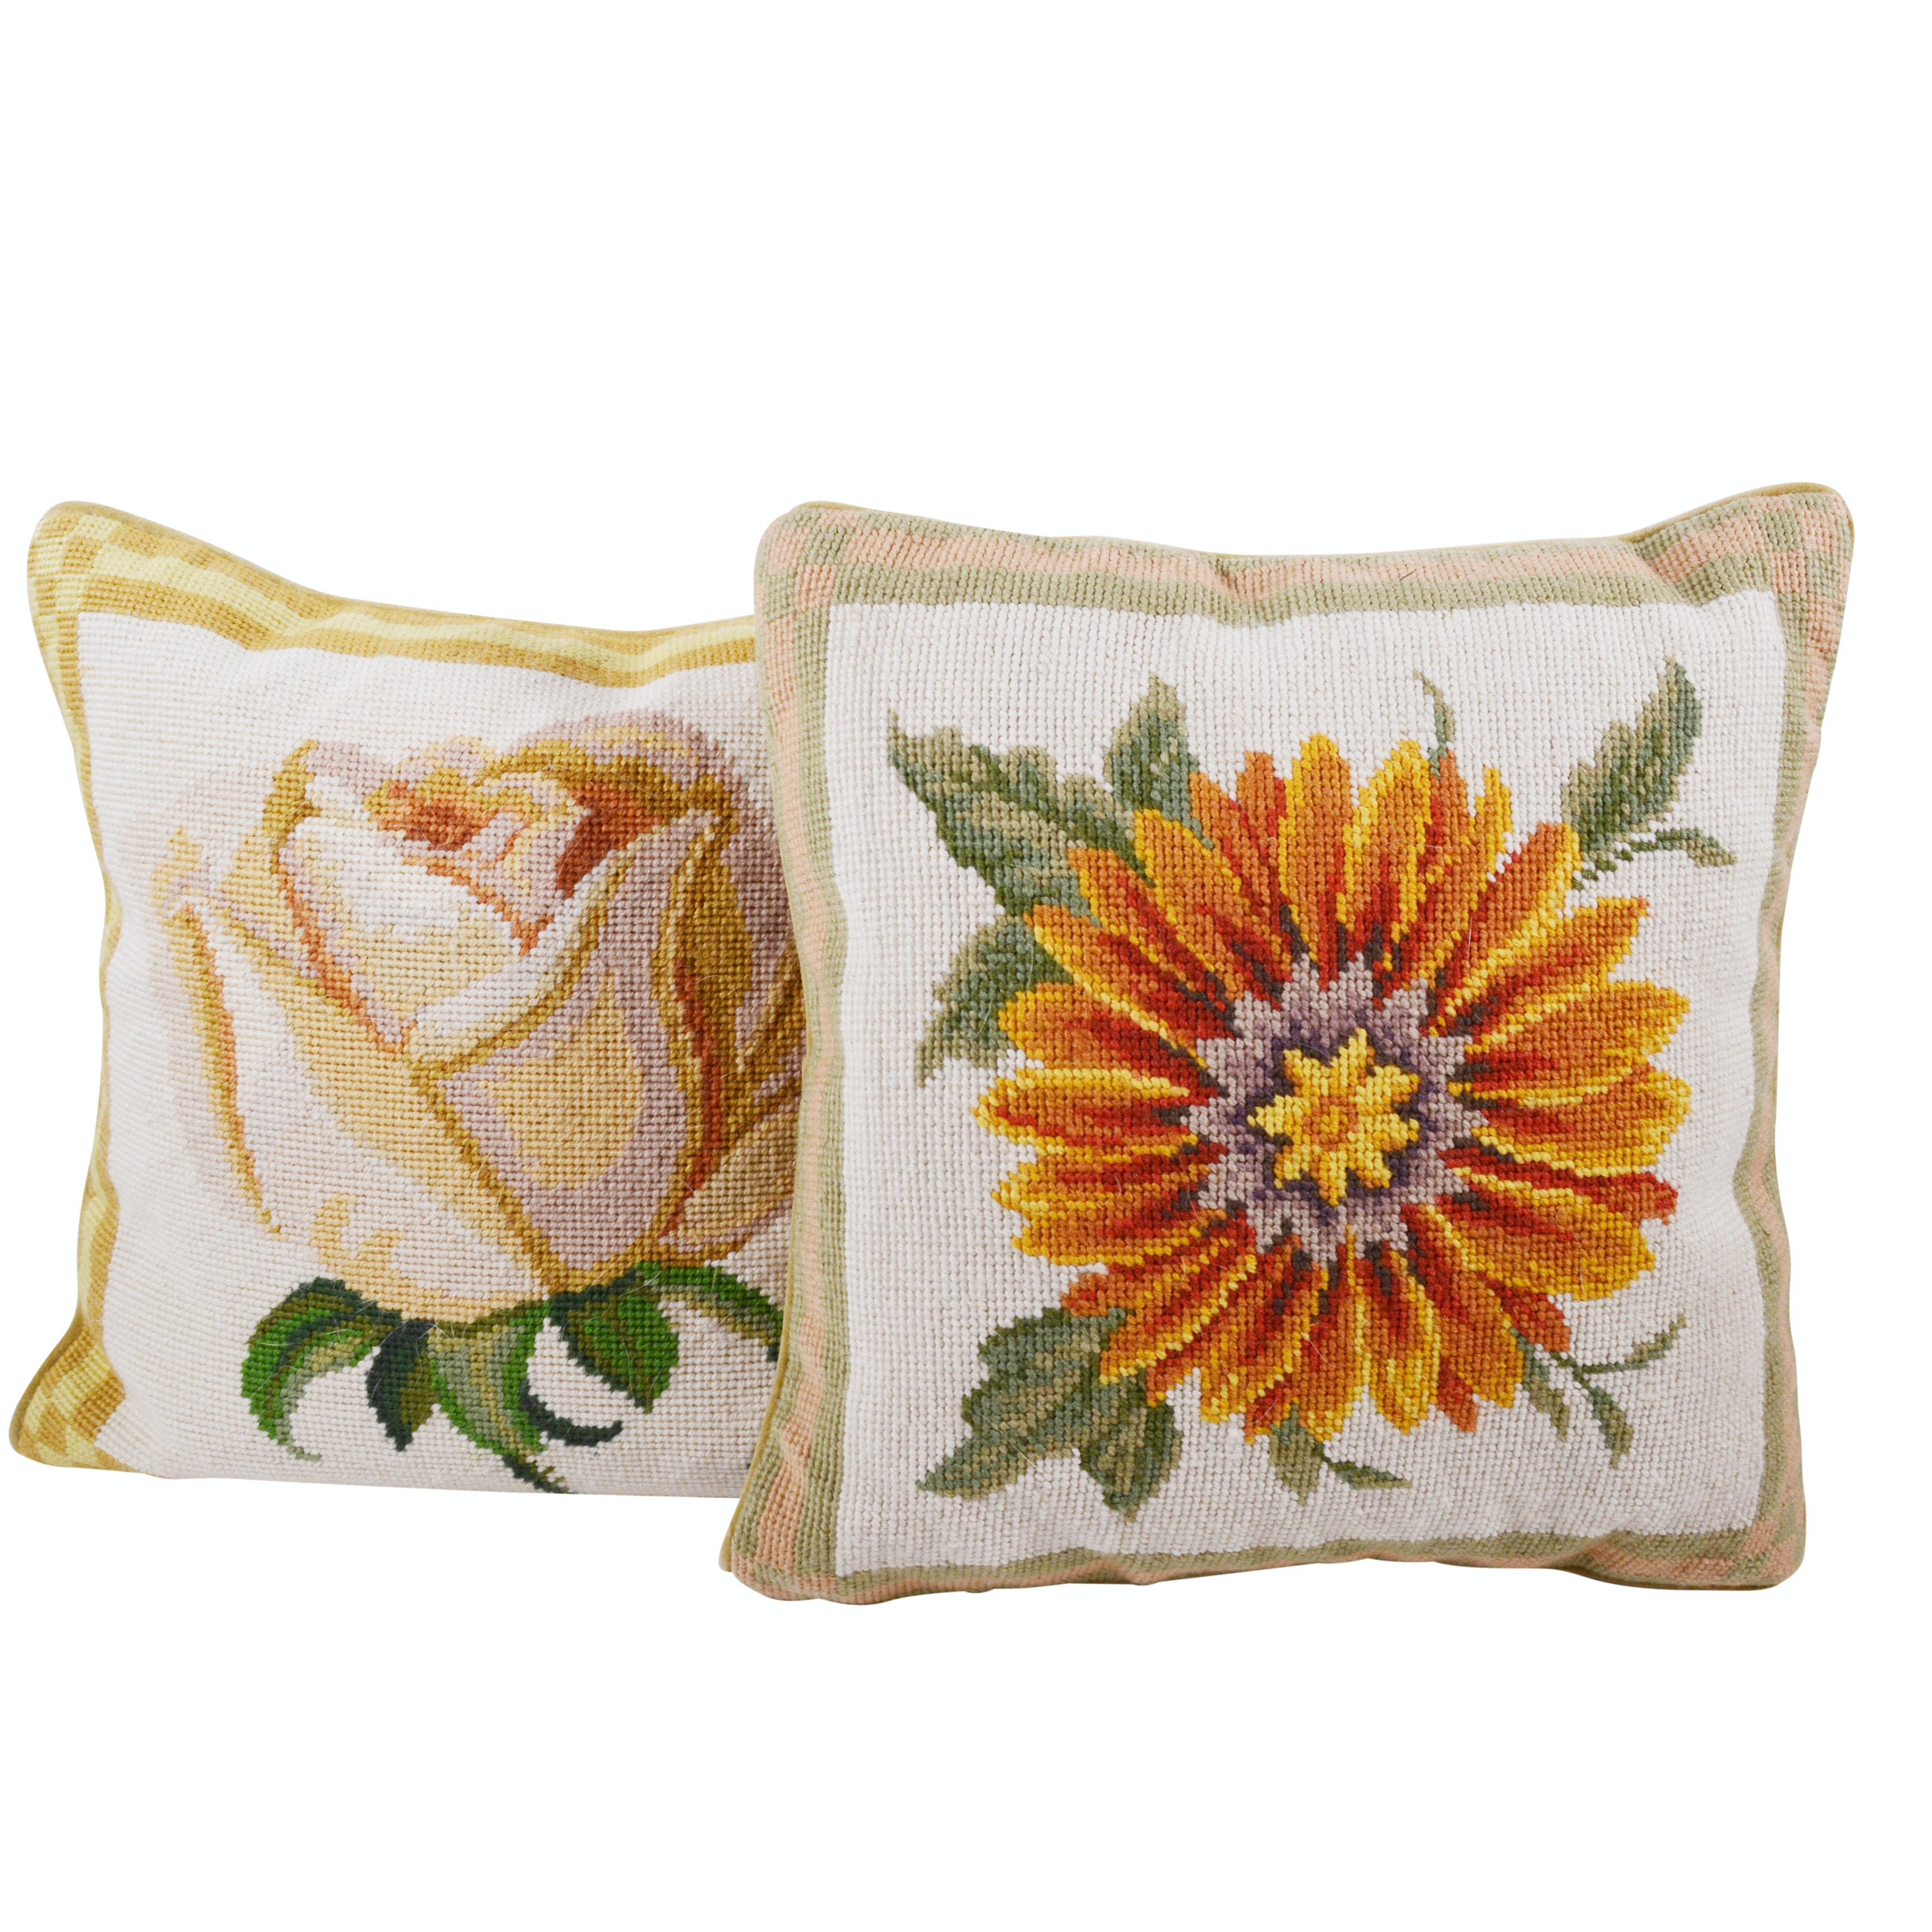 Two Floral Needlepoint Pillows